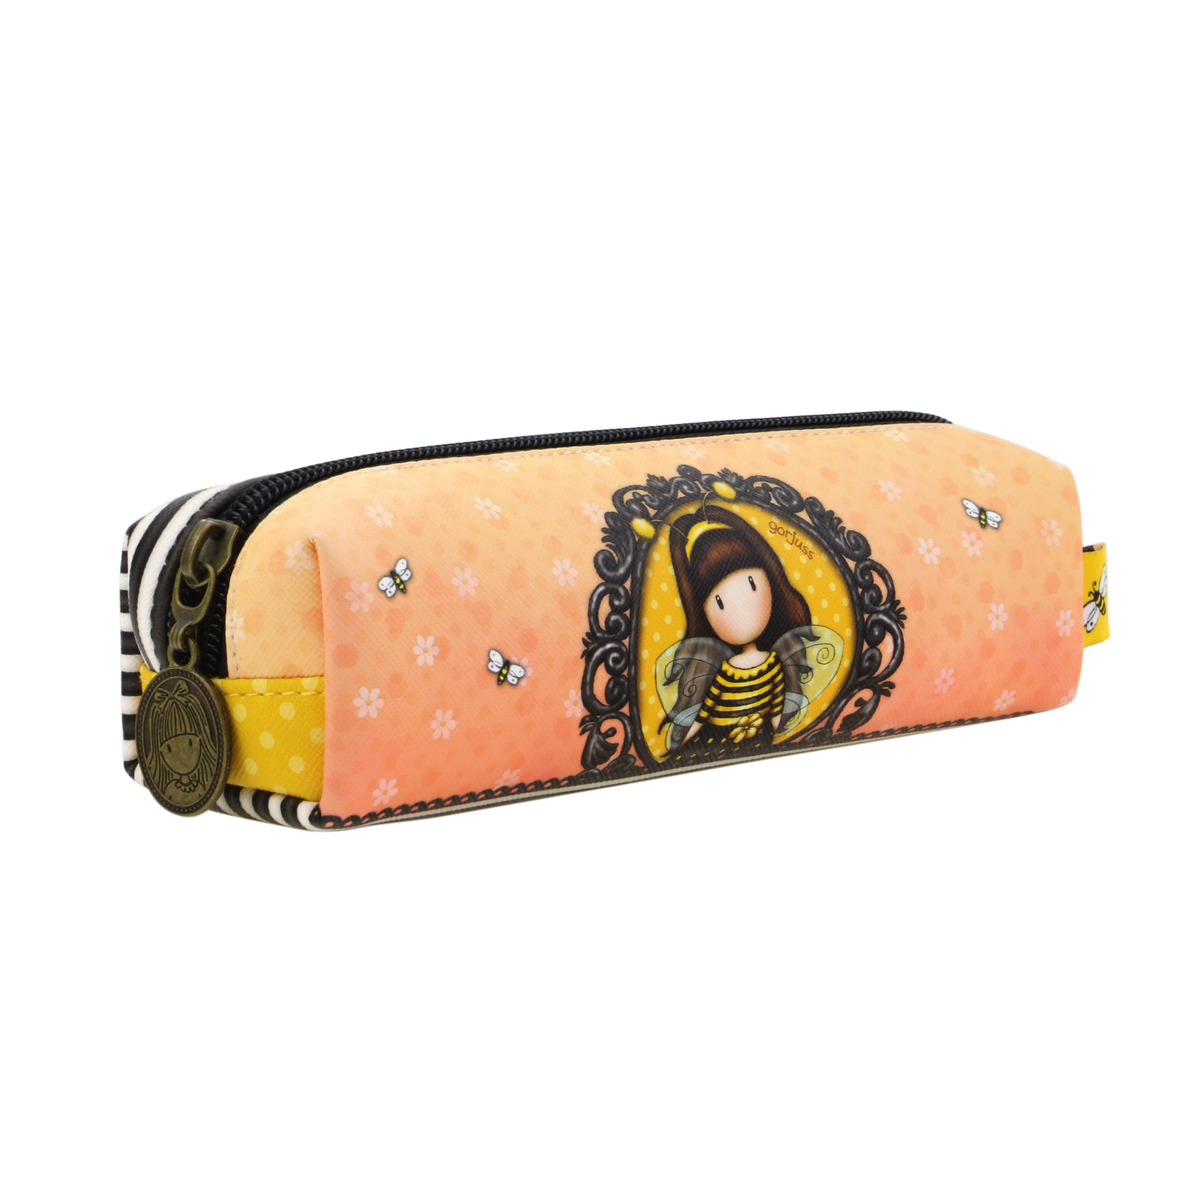 Etui rectangulaire - Bee Loved